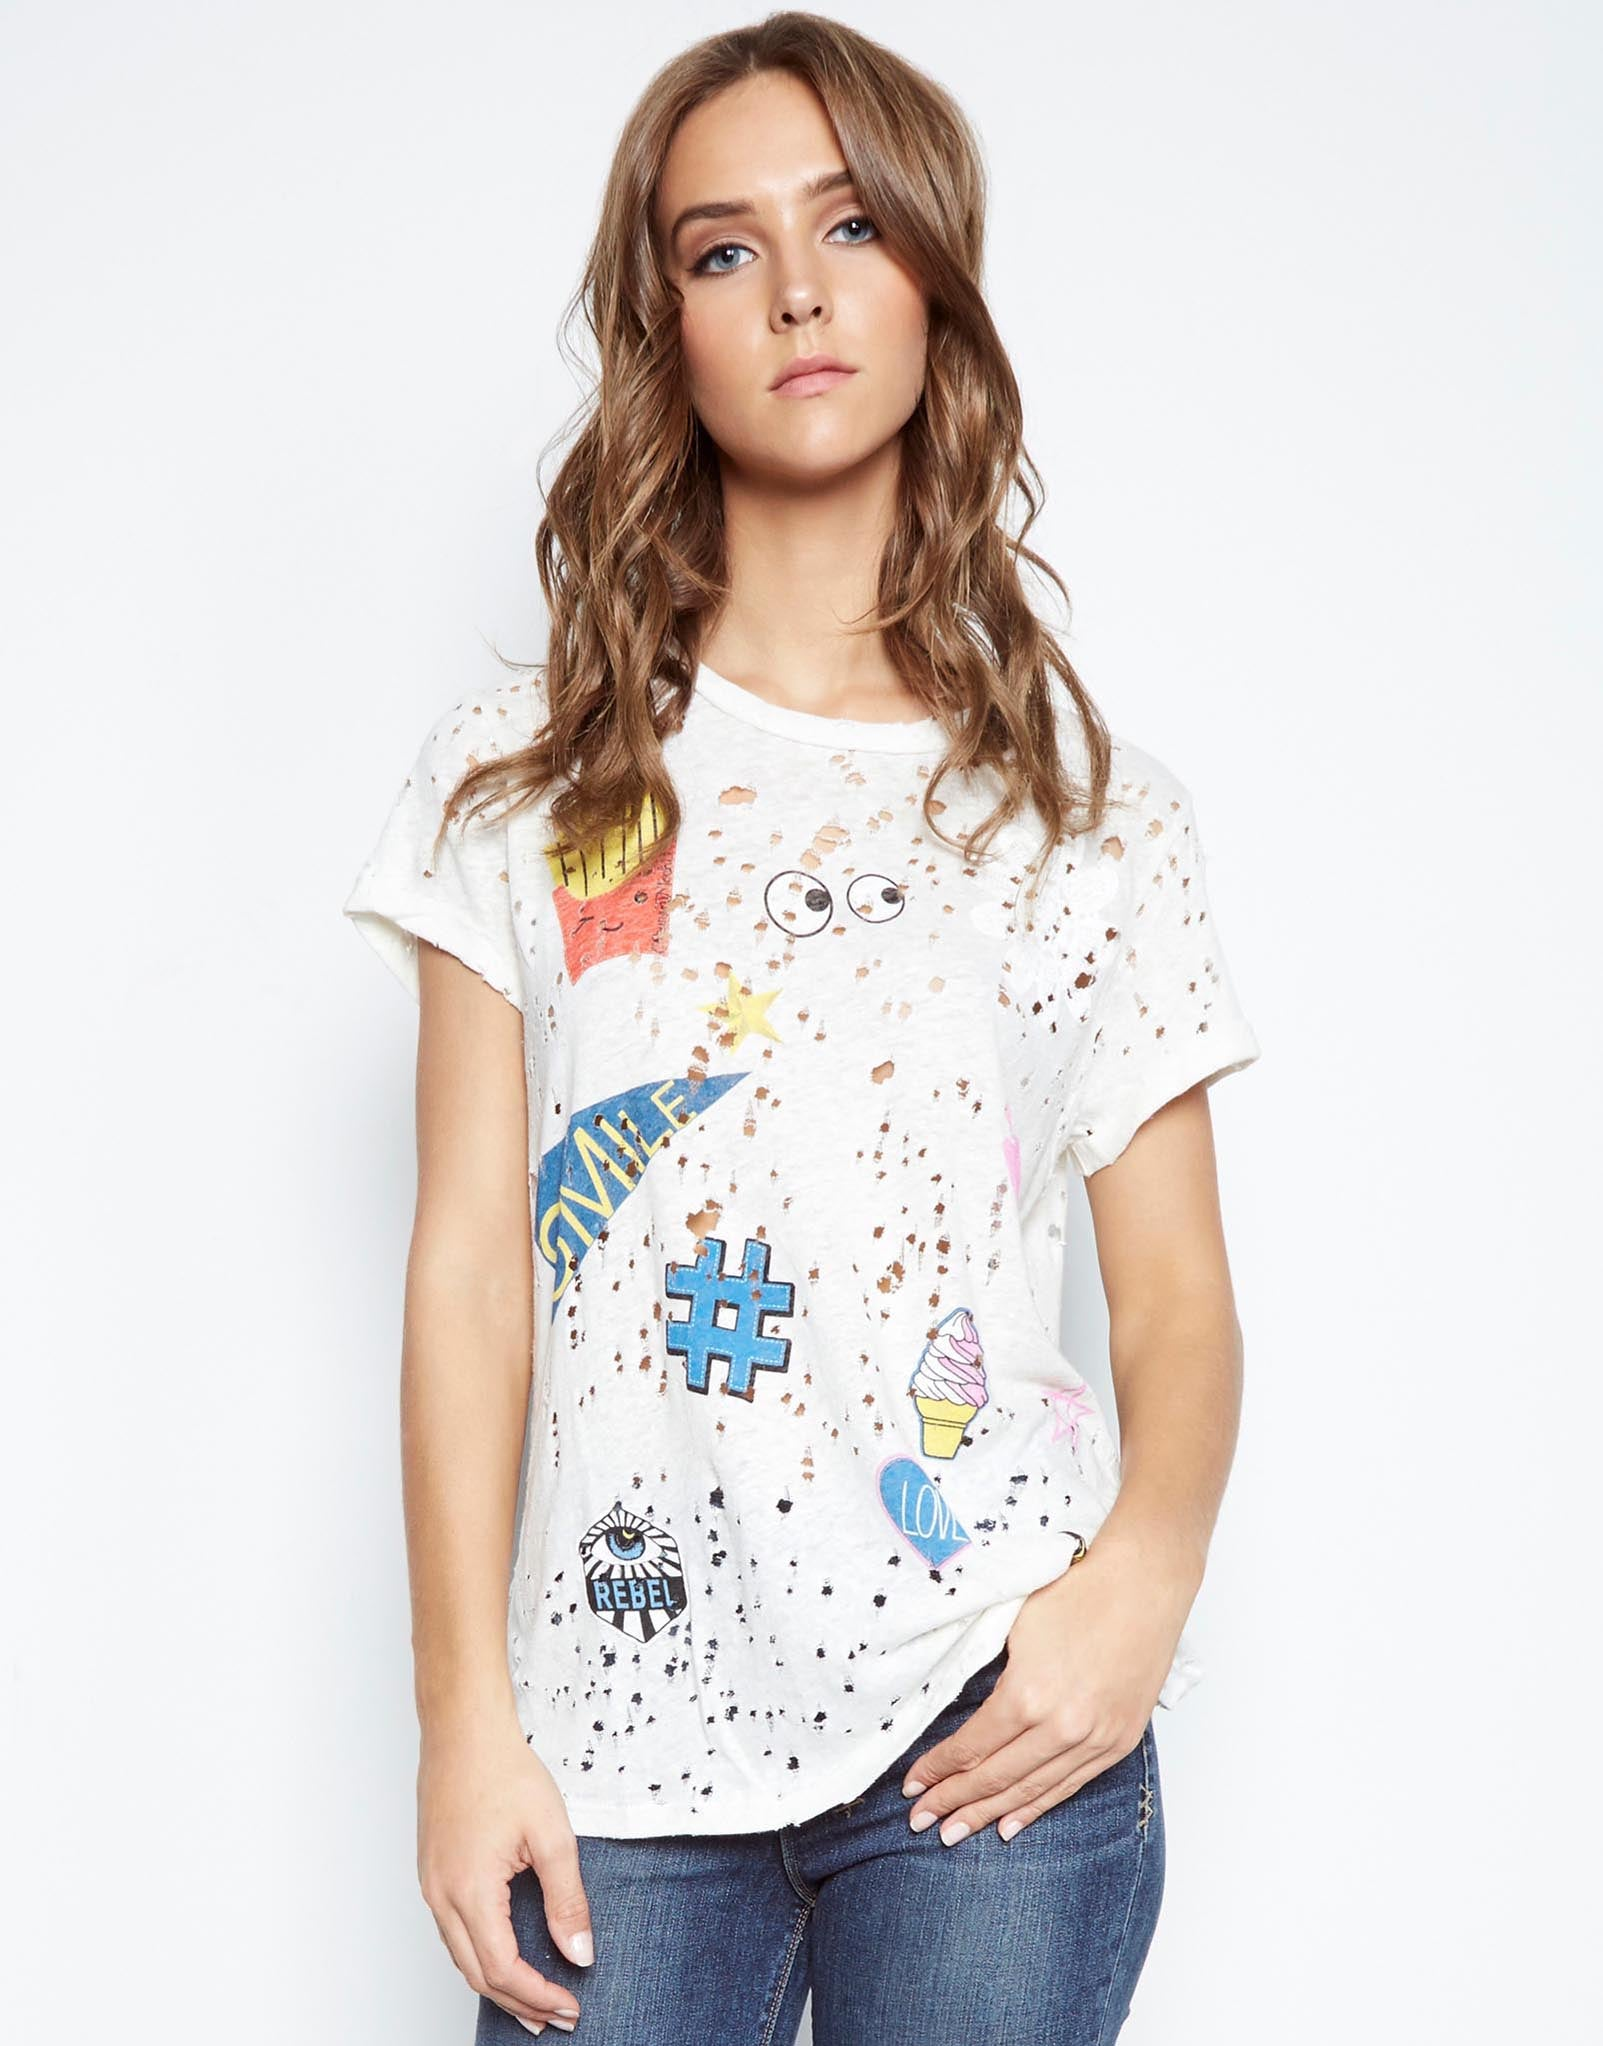 Bess Love & Smile S/S Roll Up Slv Vintage Tee - Lauren Moshi